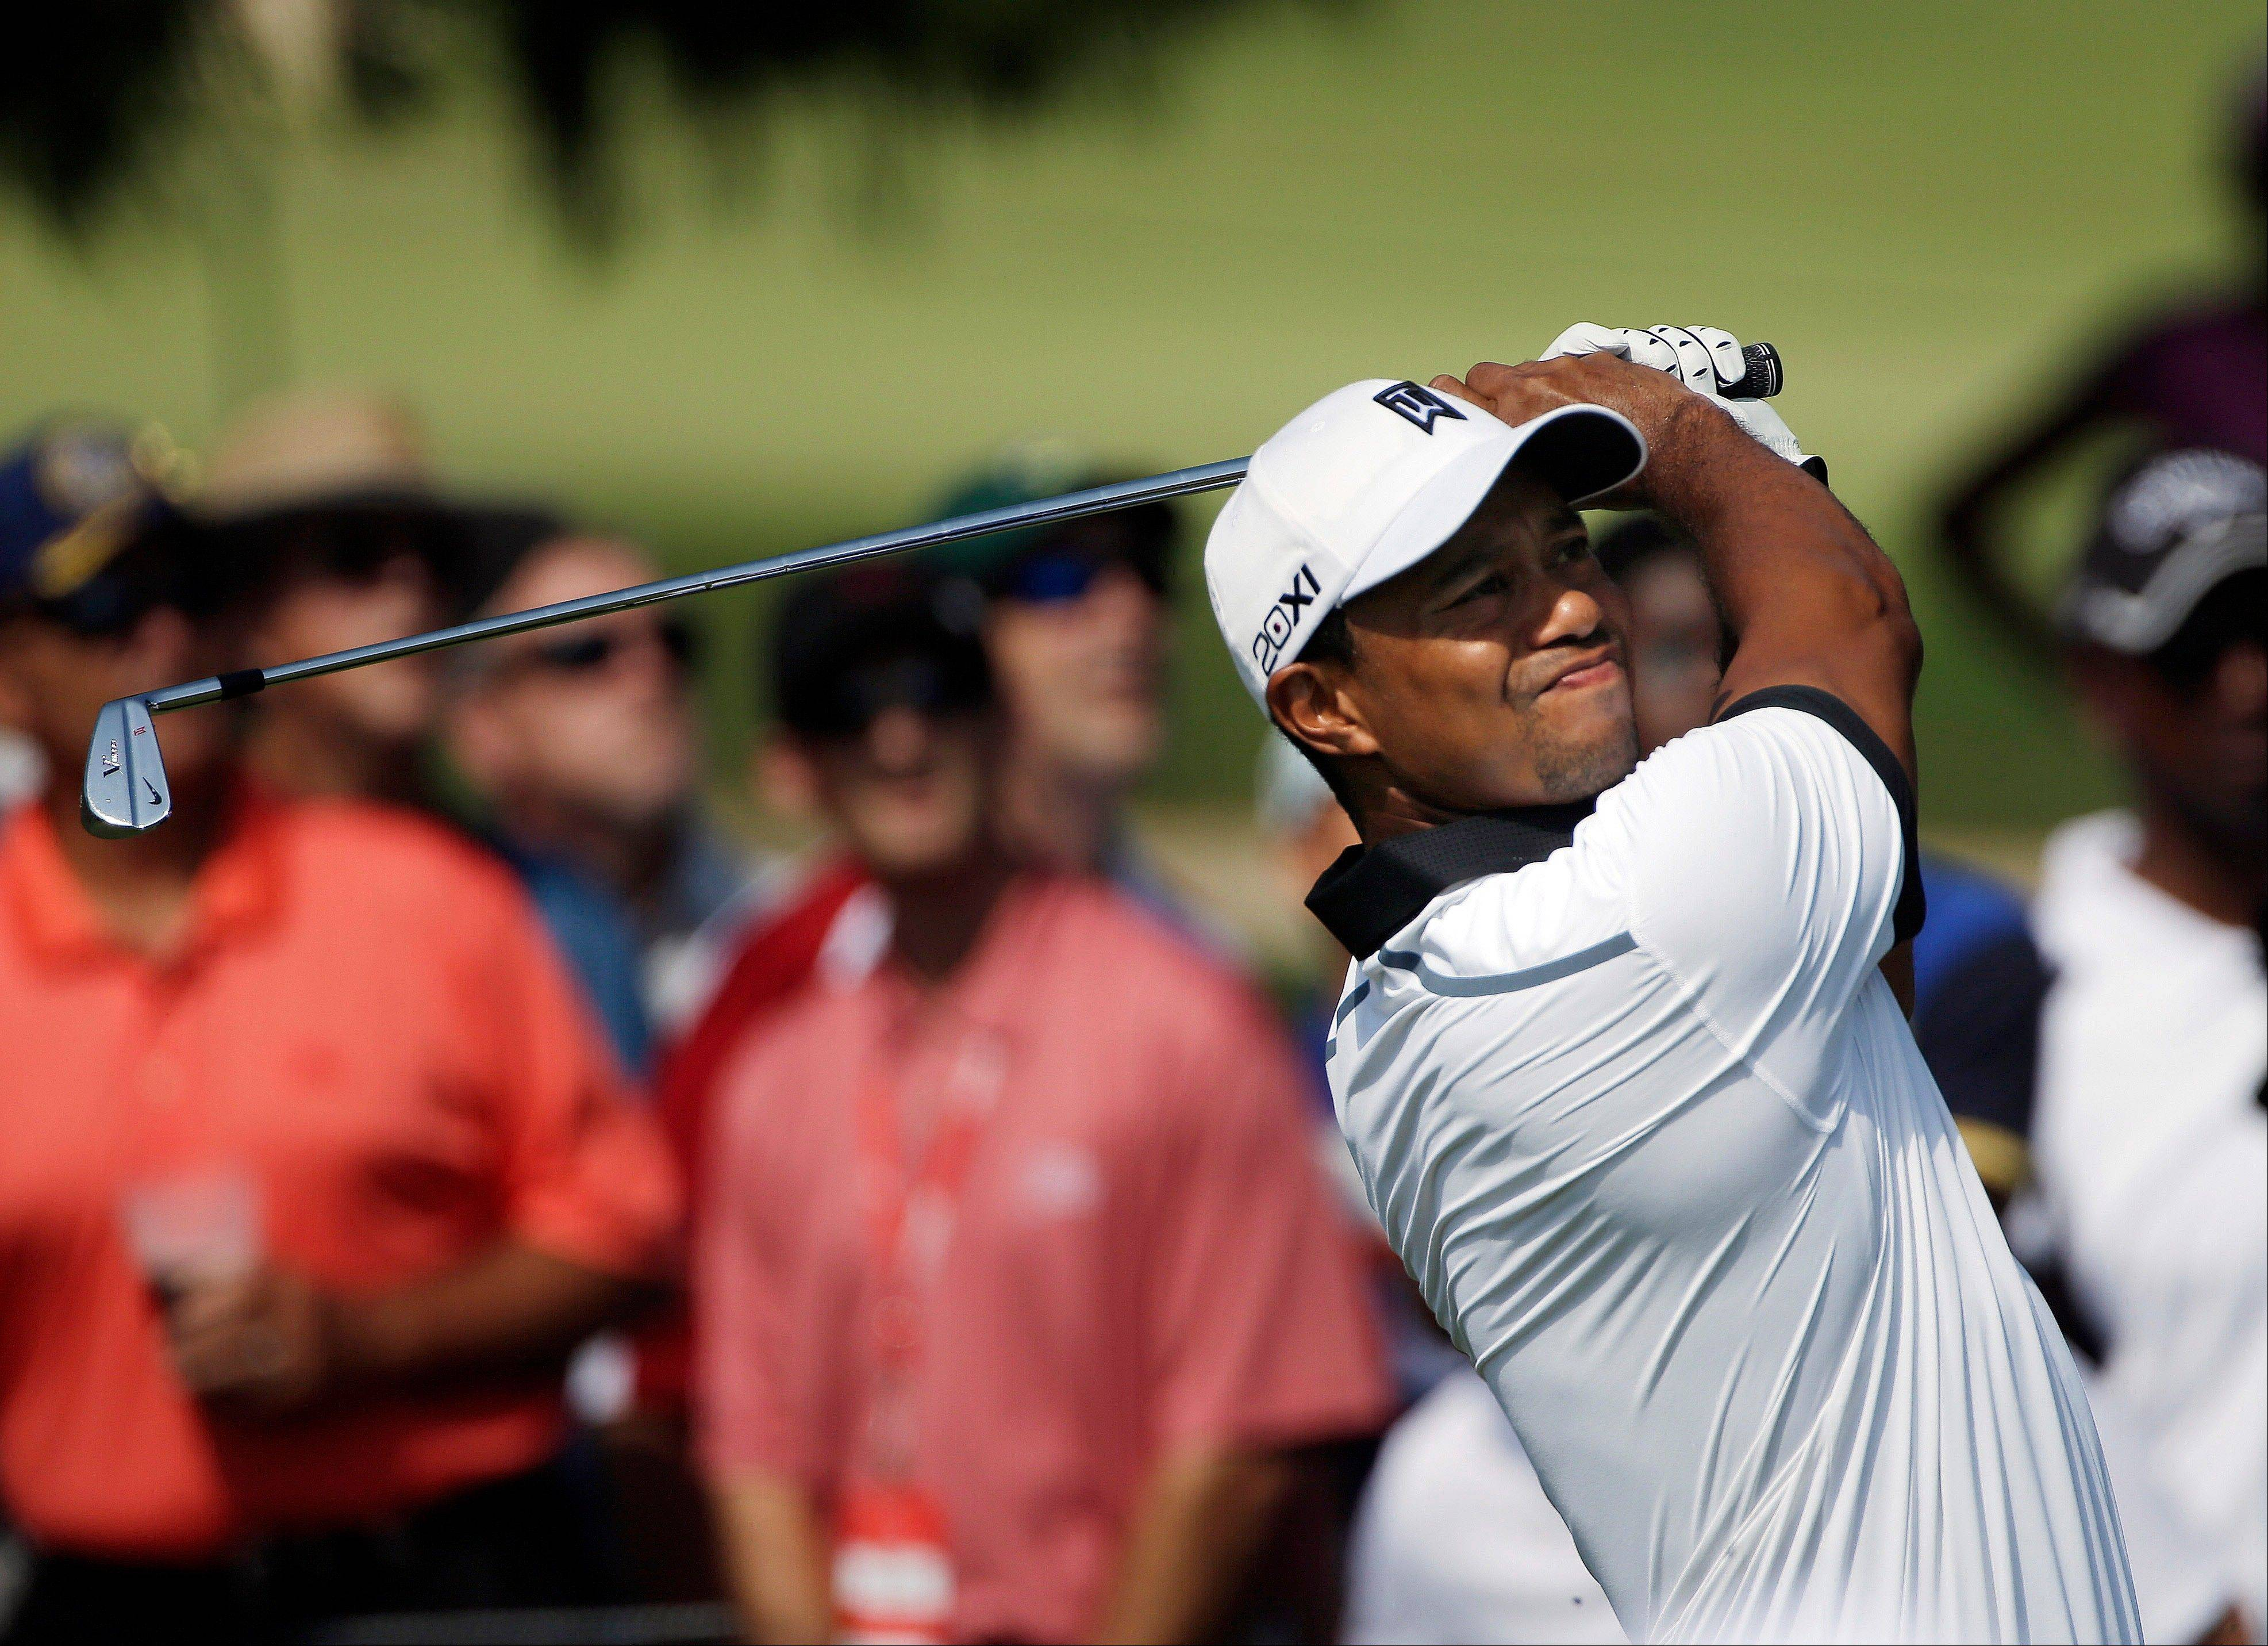 Tiger Woods hits from the second tee during the second round of the Tour Championship golf tournament Friday at East Lake Golf Club in Atlanta.